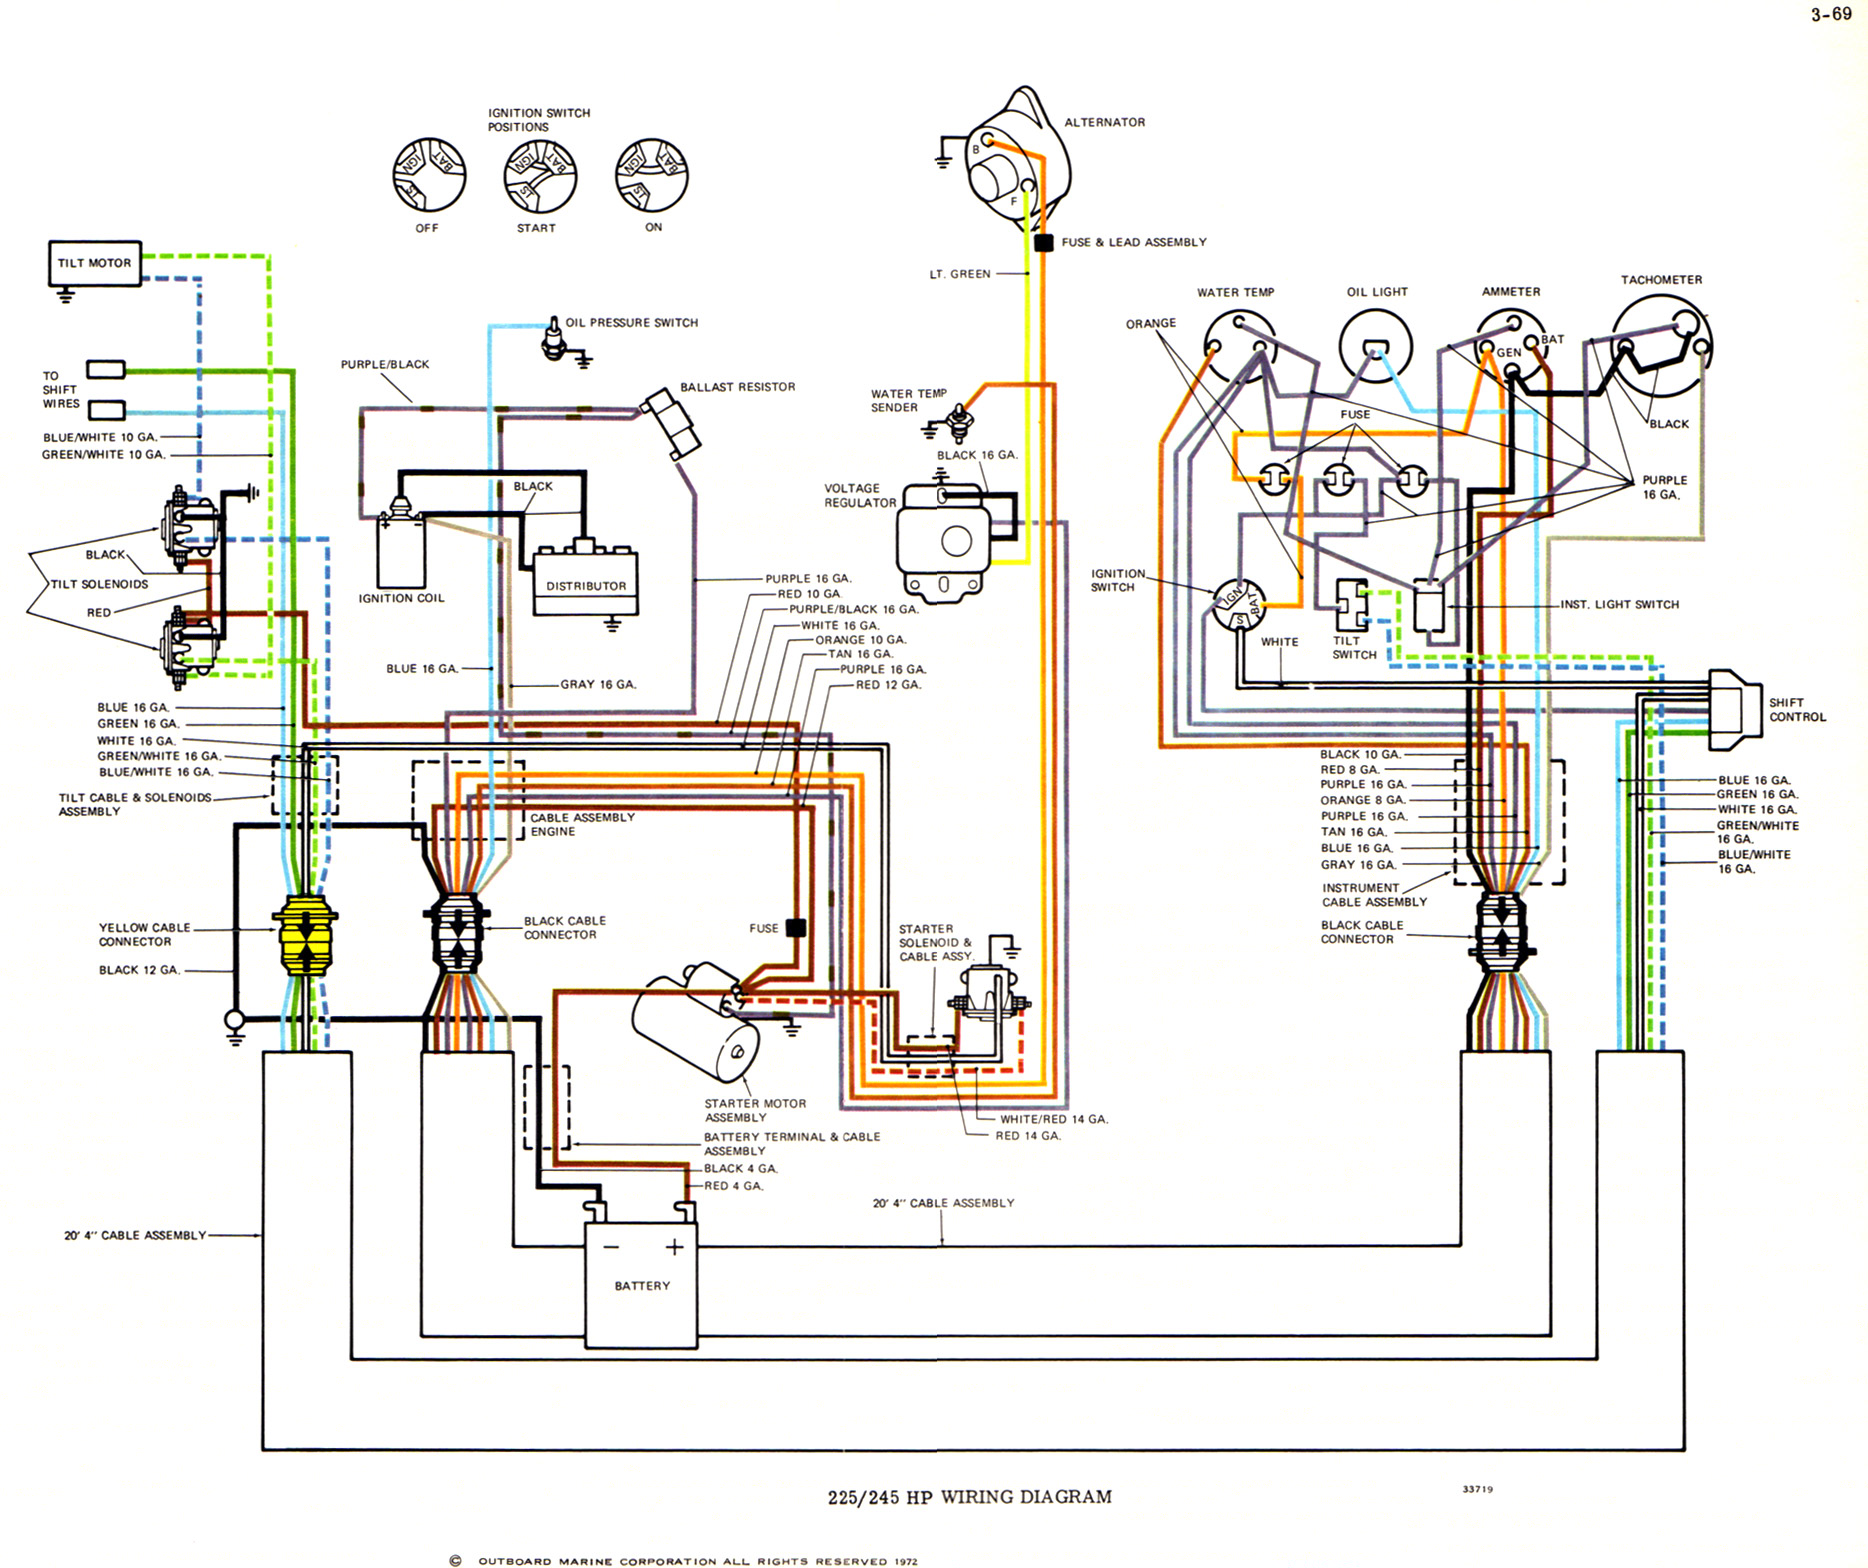 73_OMC_V8_all_big omc wiring harness diagram johmson wiring harness \u2022 wiring  at creativeand.co